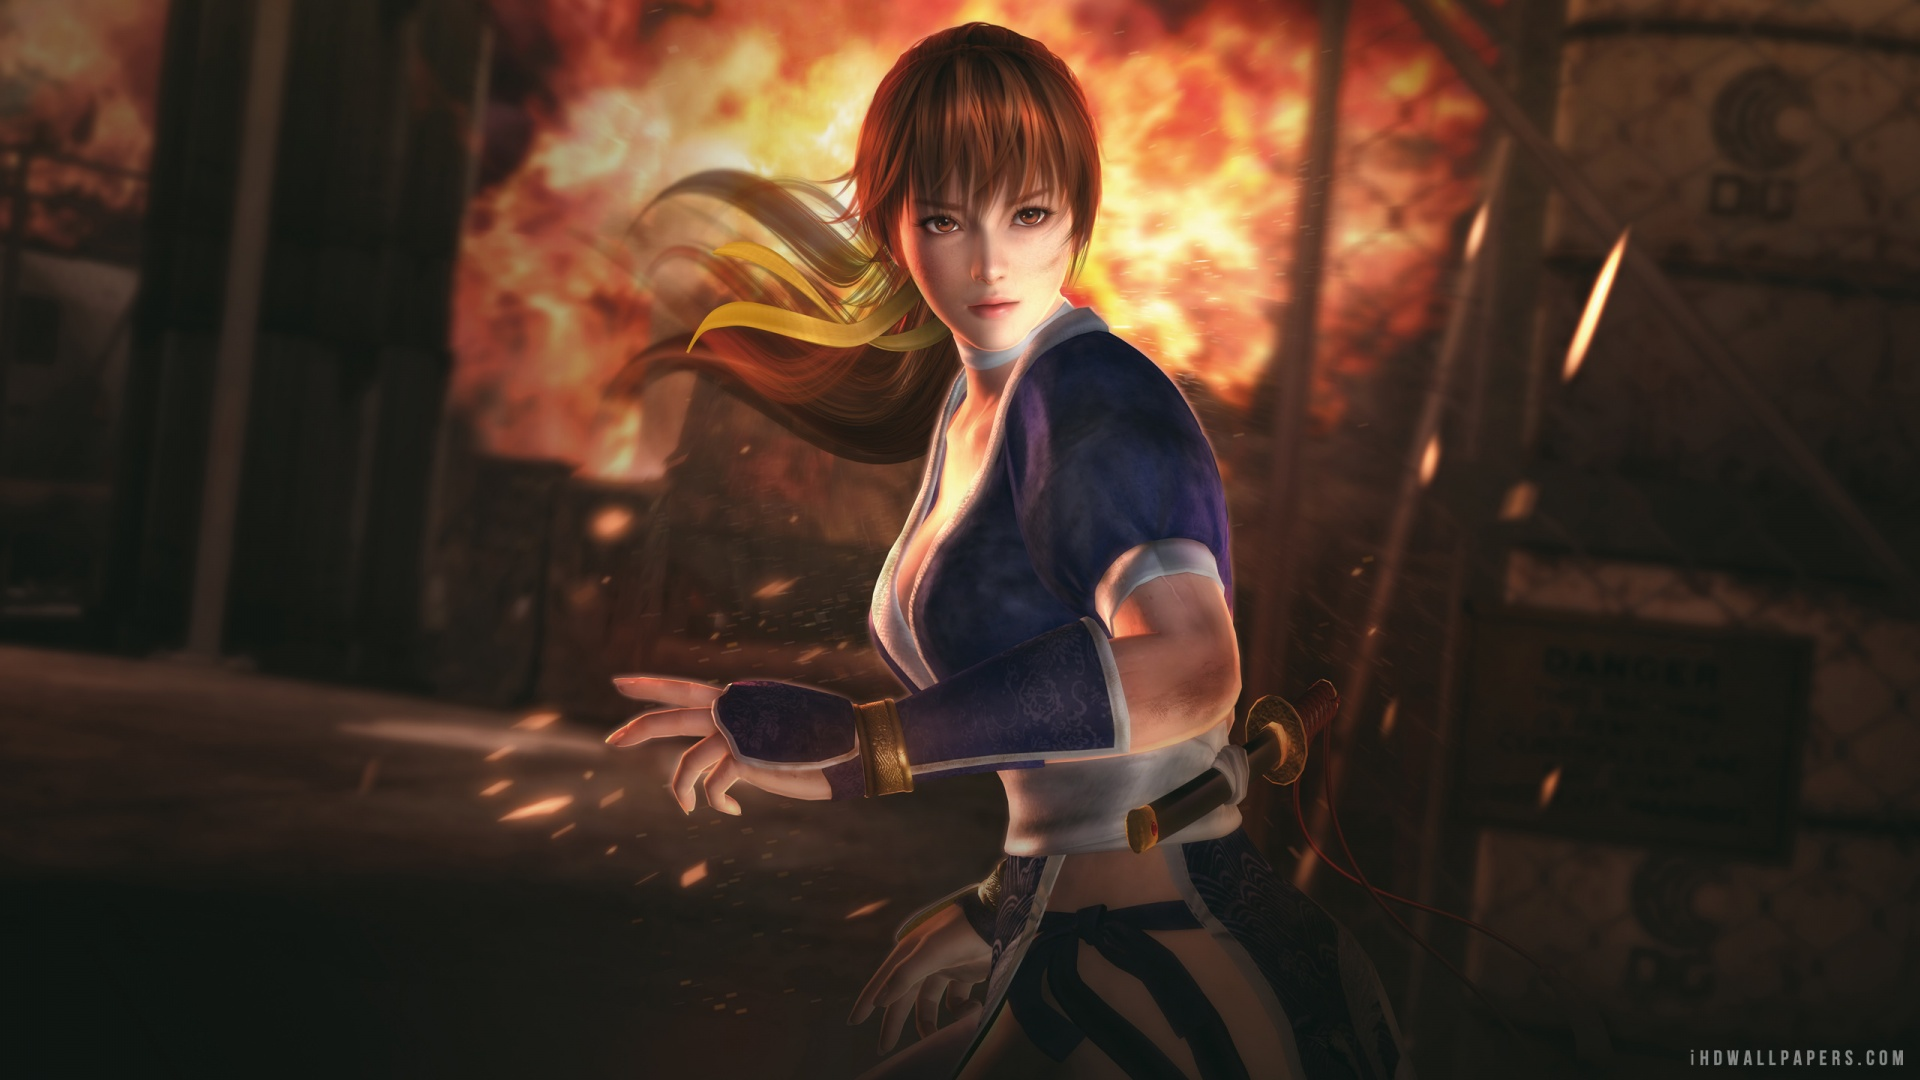 Full HDQ Wallpapers: Dead Or Alive 5 Wallpapers, 646x325 px